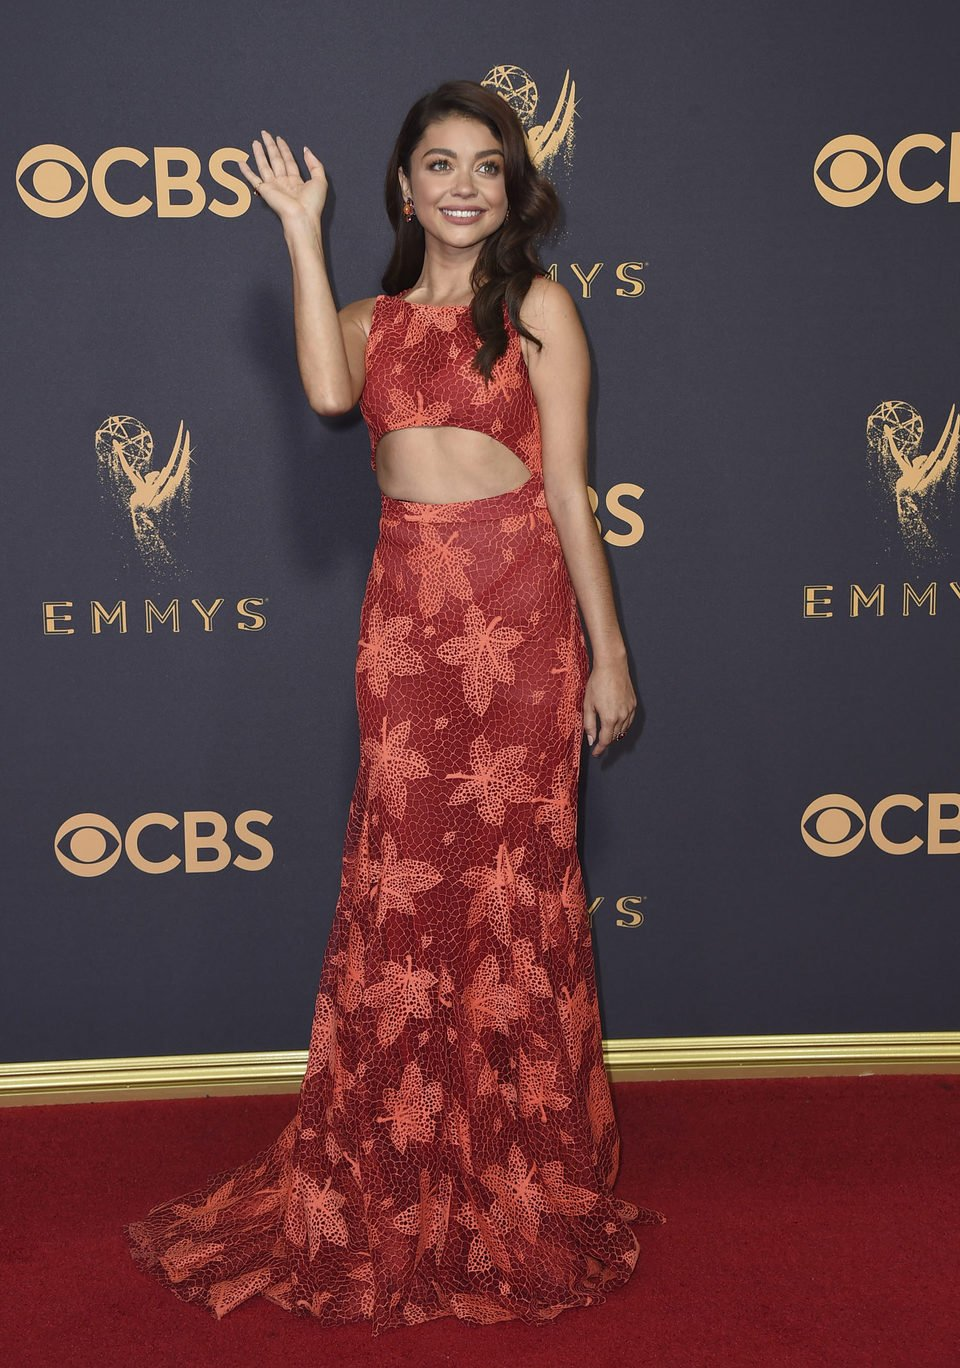 Sarah Hyland at the Emmy 2017 red carpet